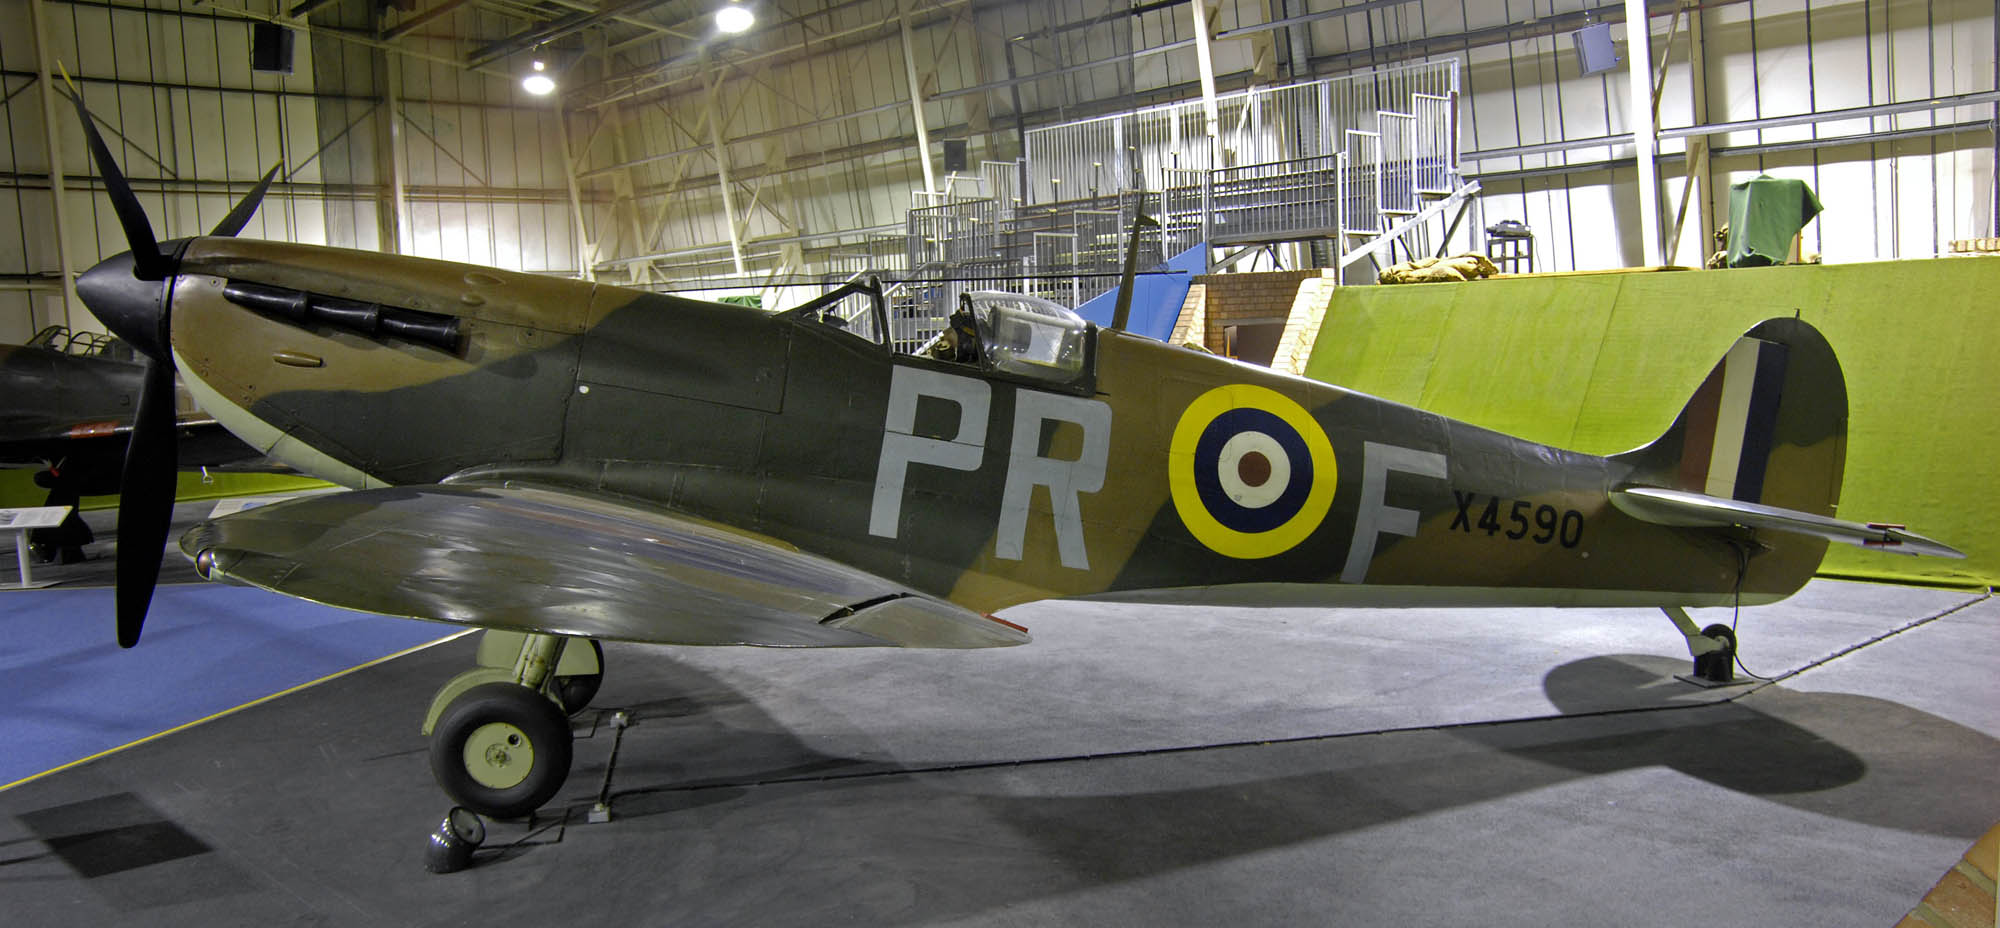 a photo of an RAF Spitfire in Brown and white camouflage in a museum hangar